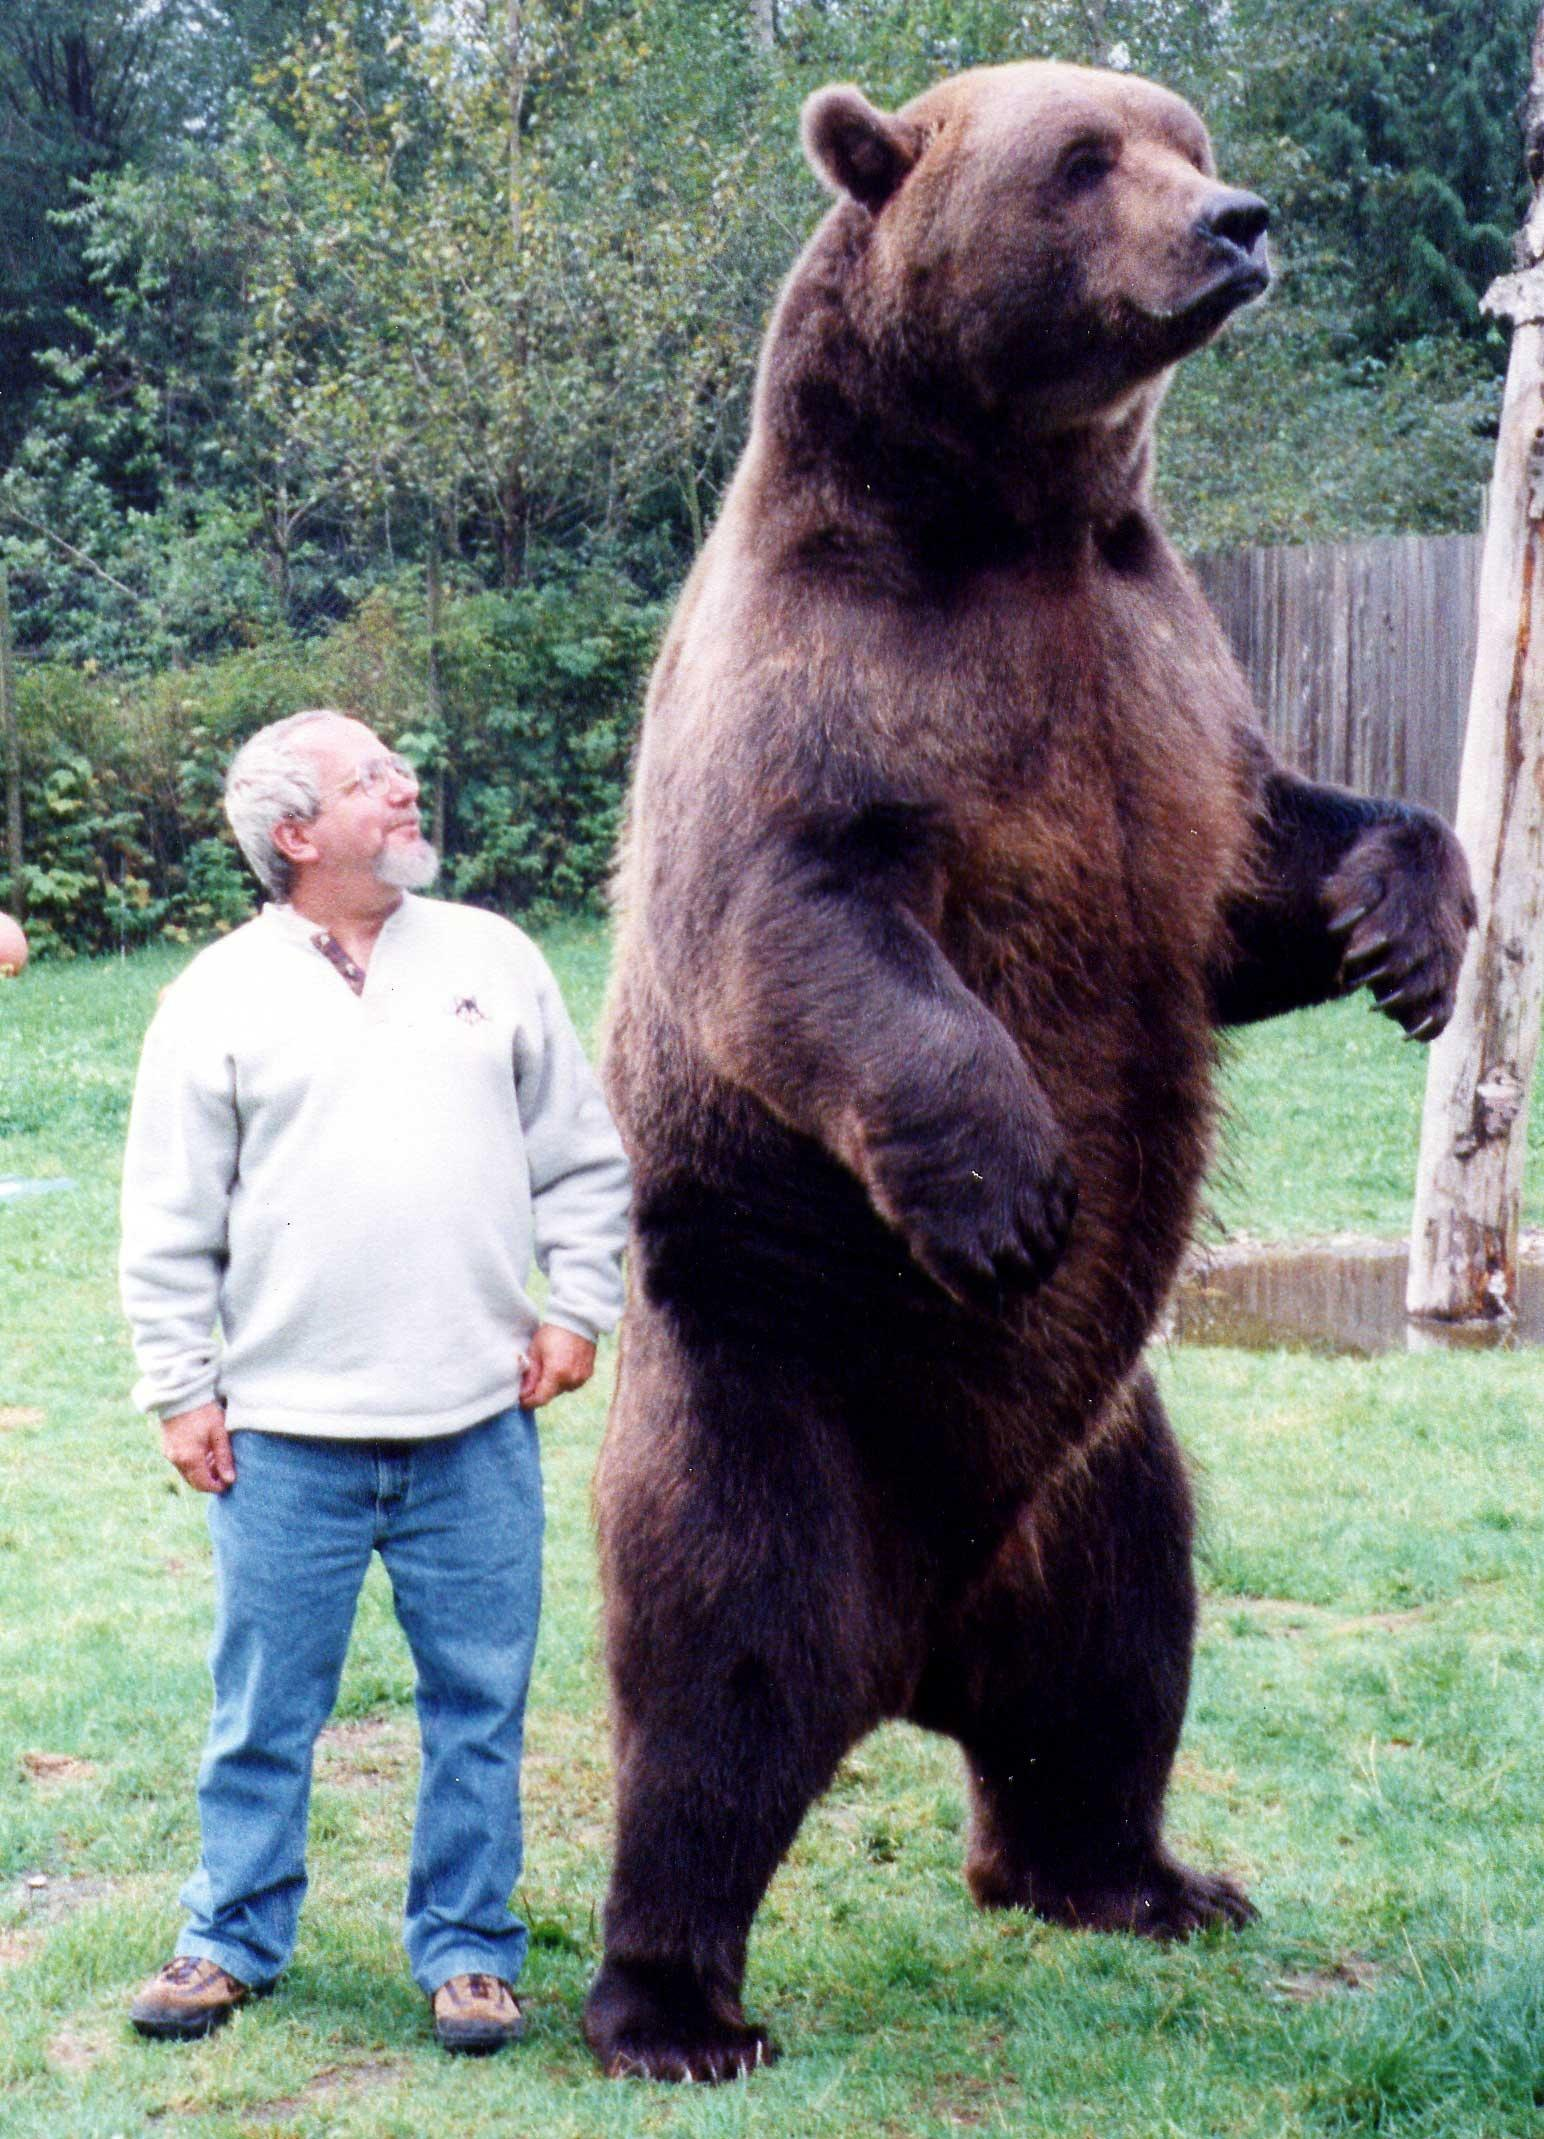 Running Bear - The Story of a 10 Foot Tall Man